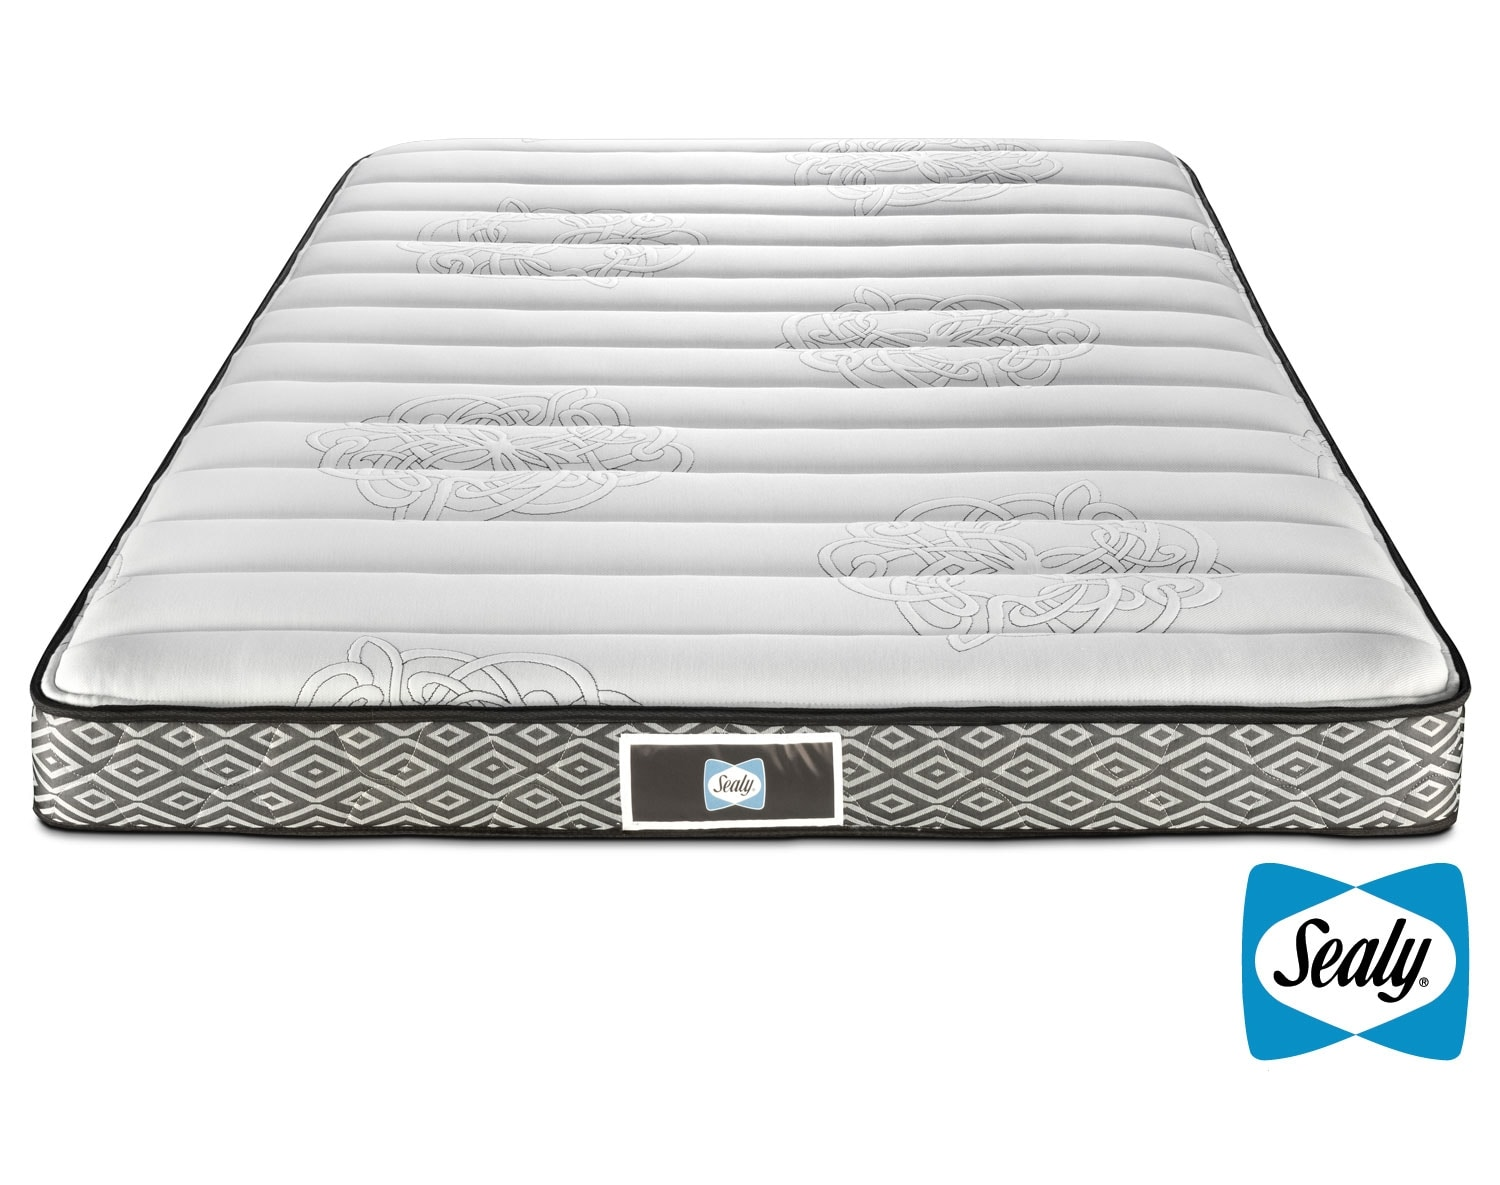 Sealy glacier queen mattress leon 39 s Queen mattress sizes